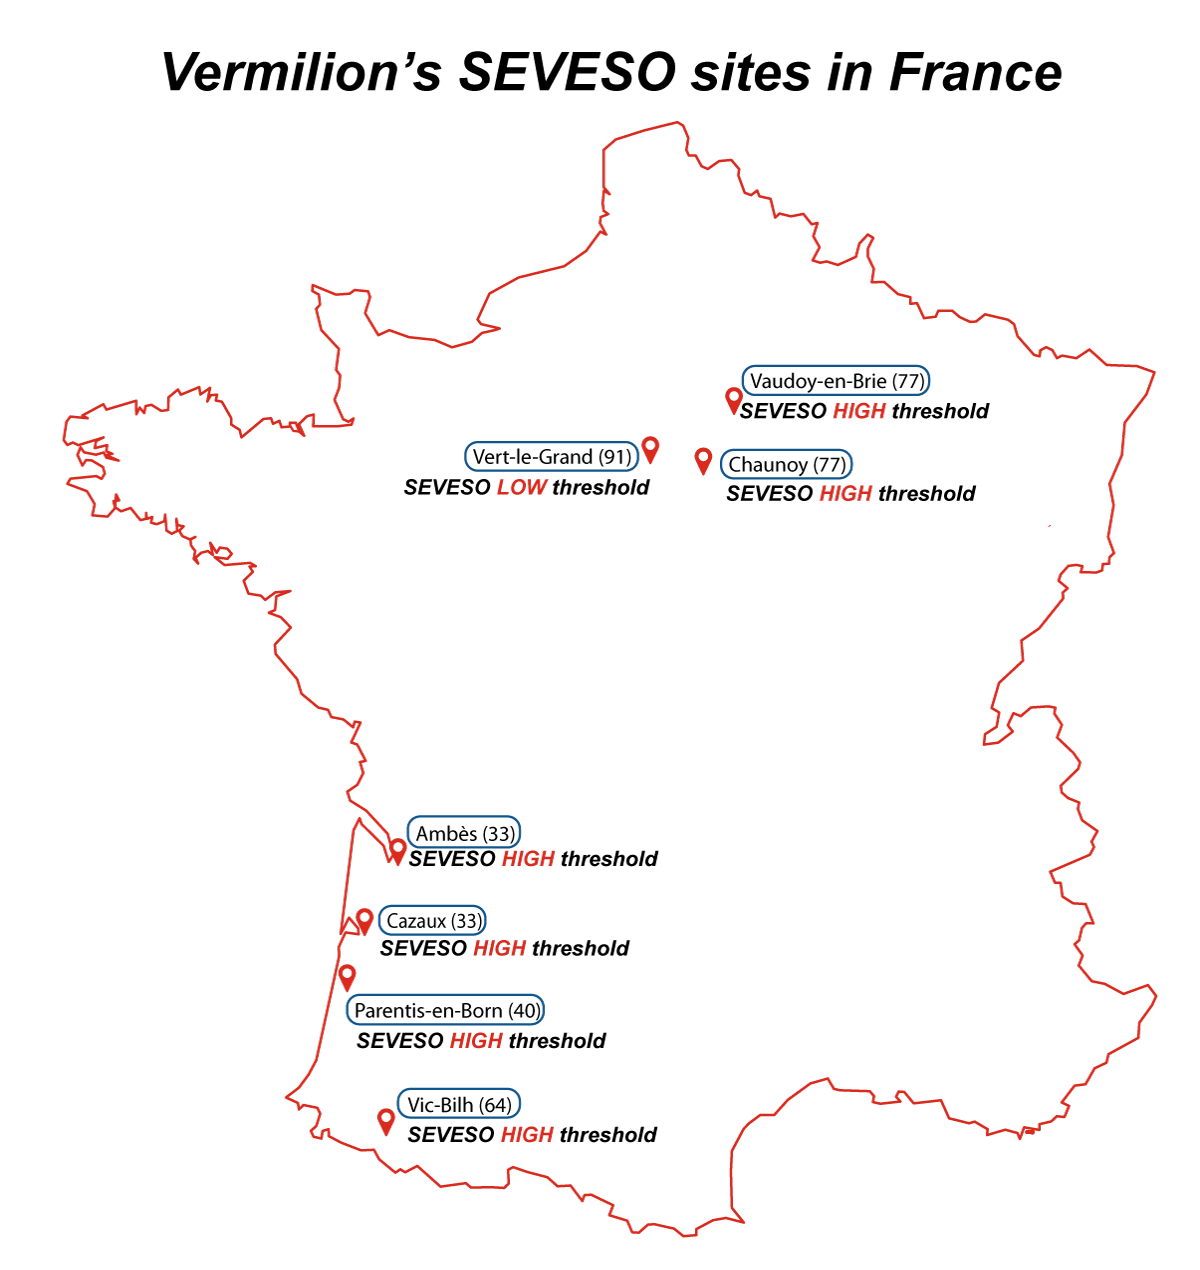 Carte des sites SEVESO de Vermilion en France.